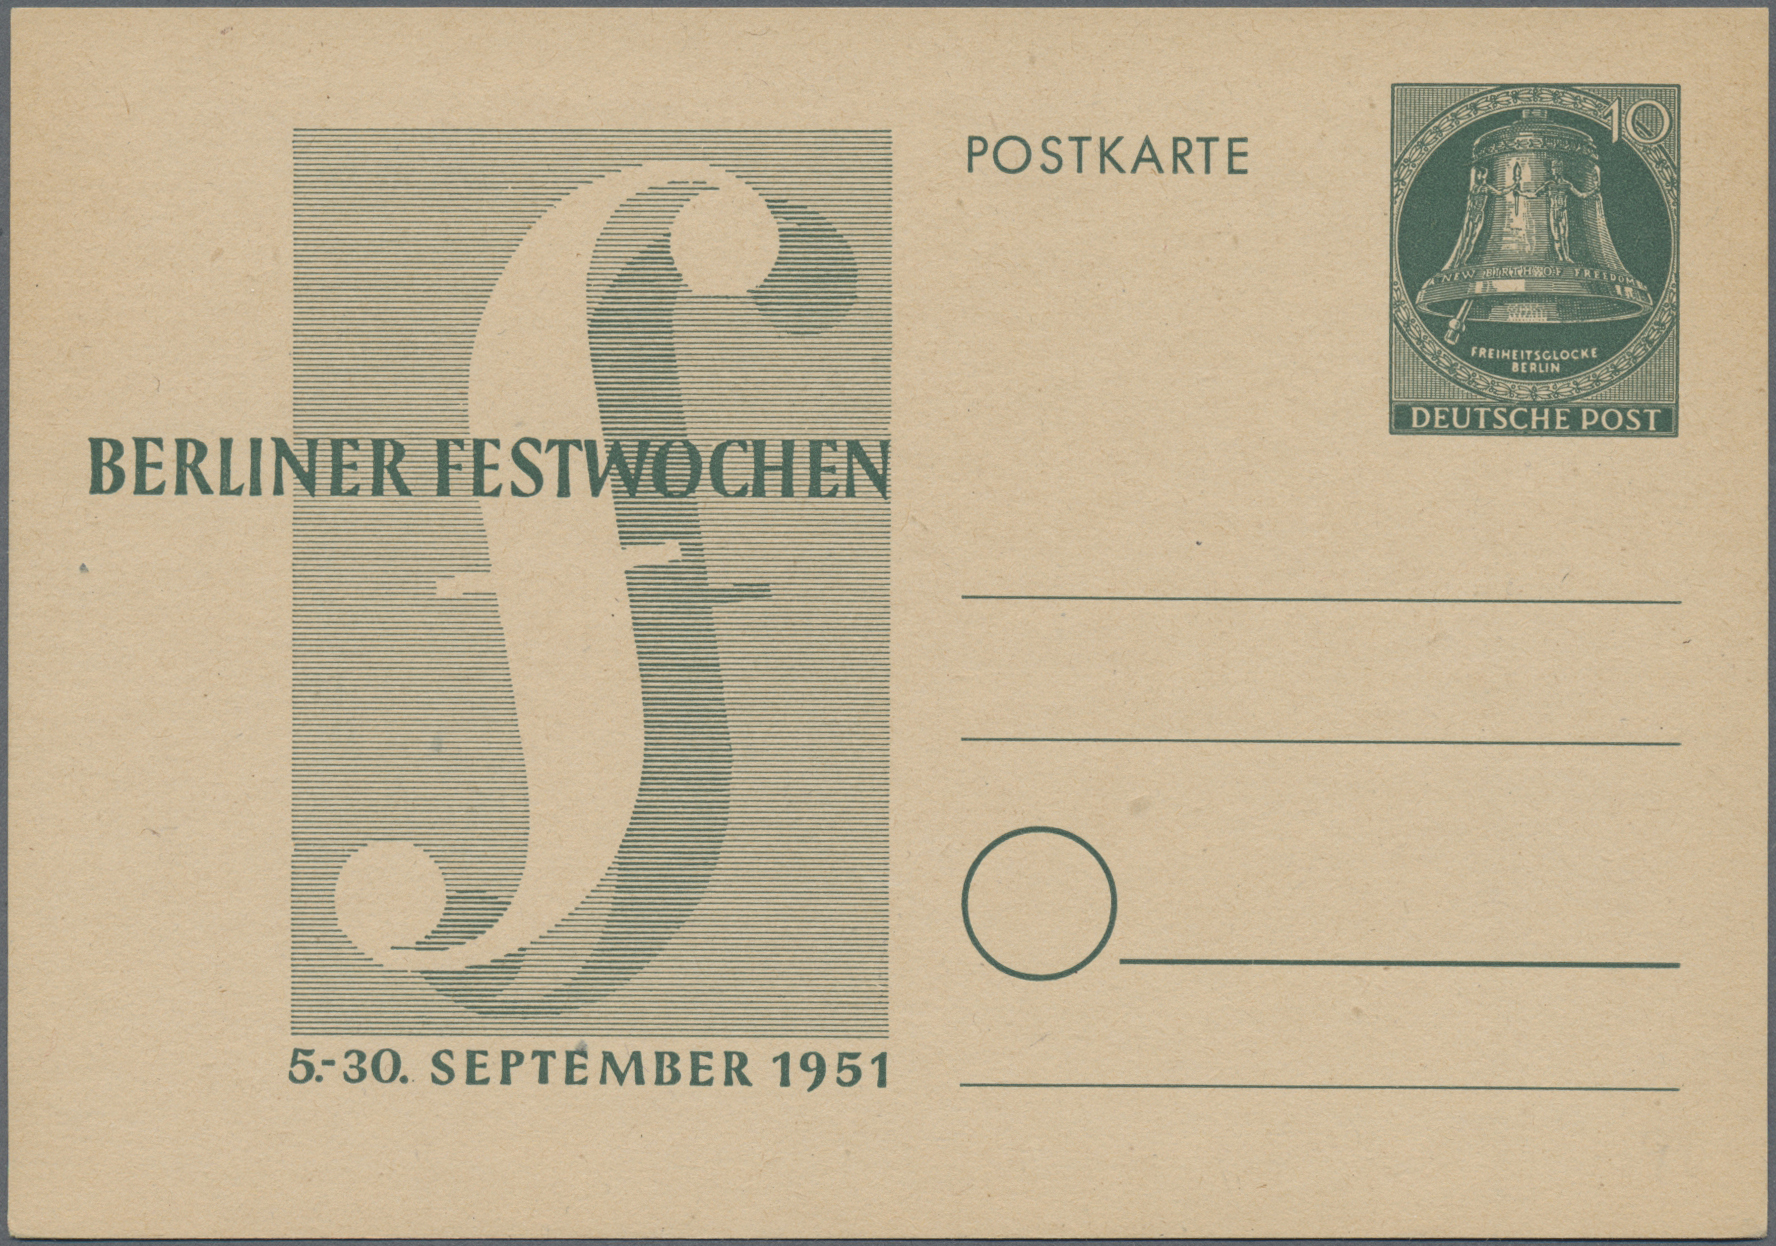 Lot 26121 - nachlässe  -  Auktionshaus Christoph Gärtner GmbH & Co. KG Sale #46 Gollcetions Germany - including the suplement